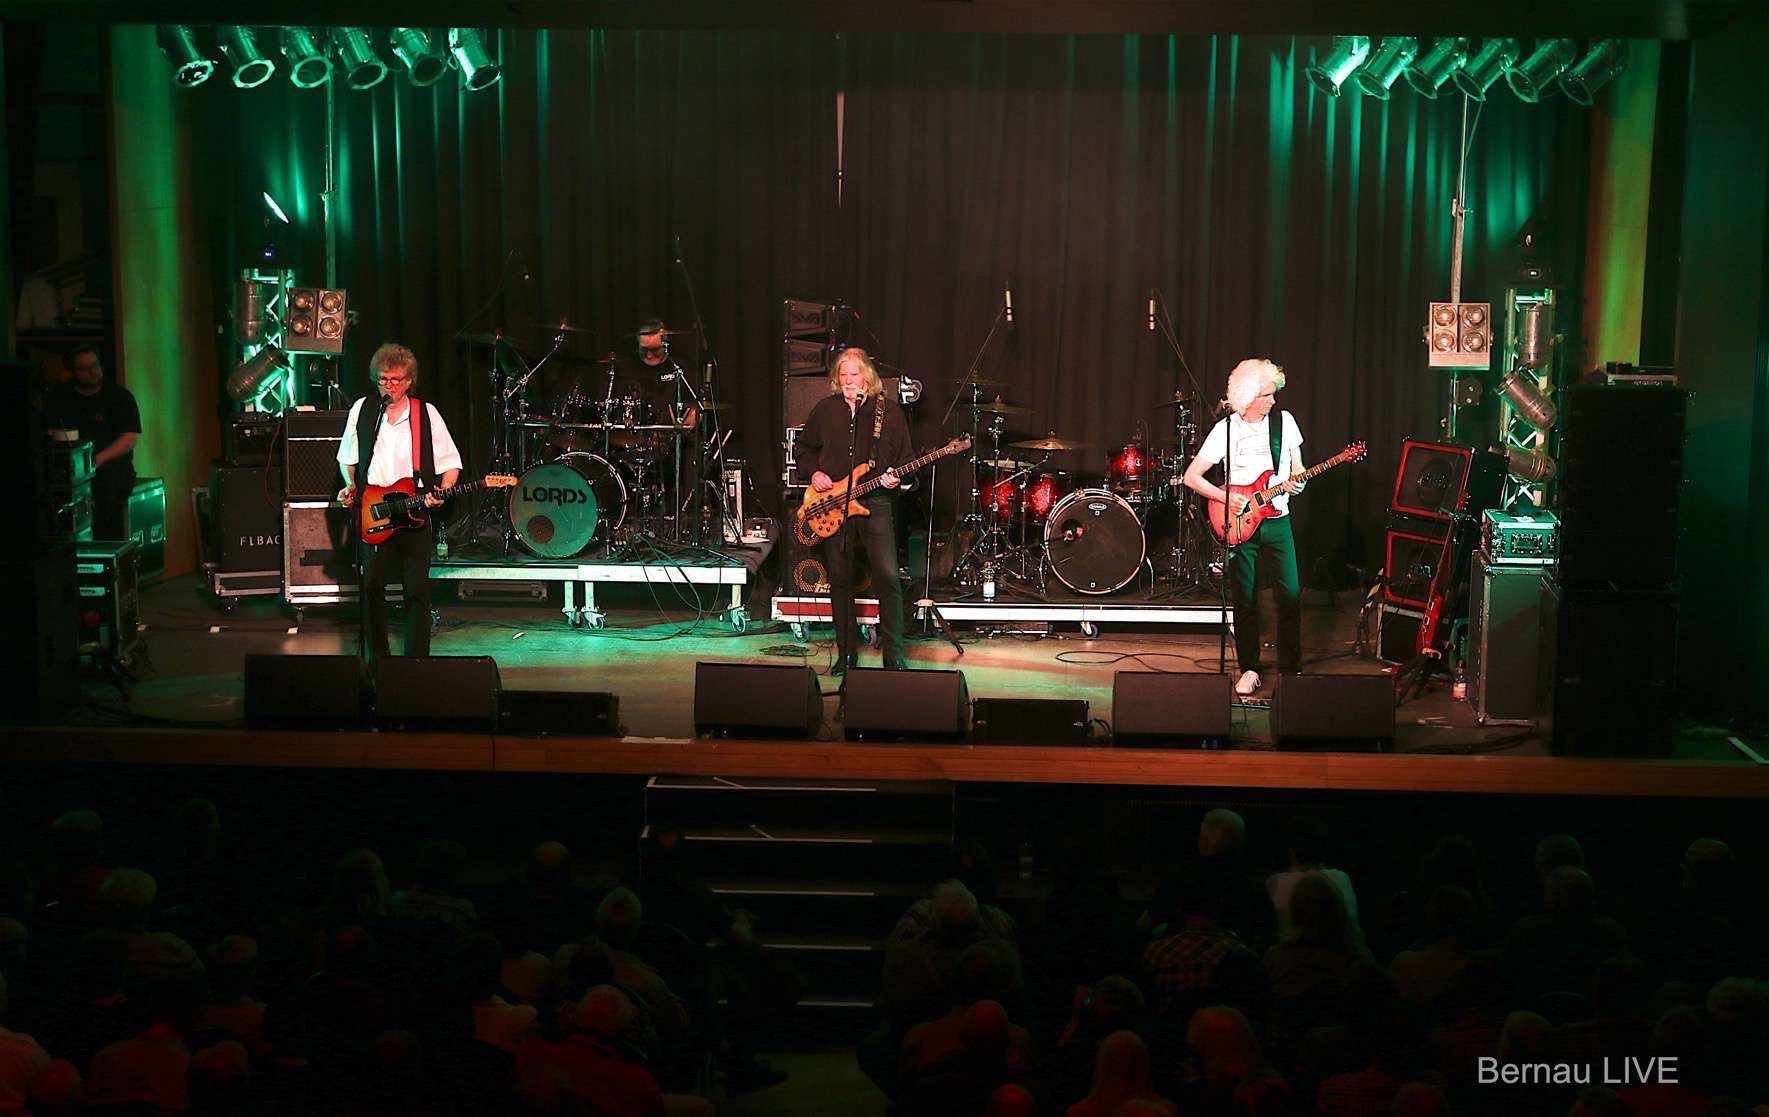 Deutsche Rocklegenden The Rattles & The Lords gastieren in der Bernauer Stadthalle